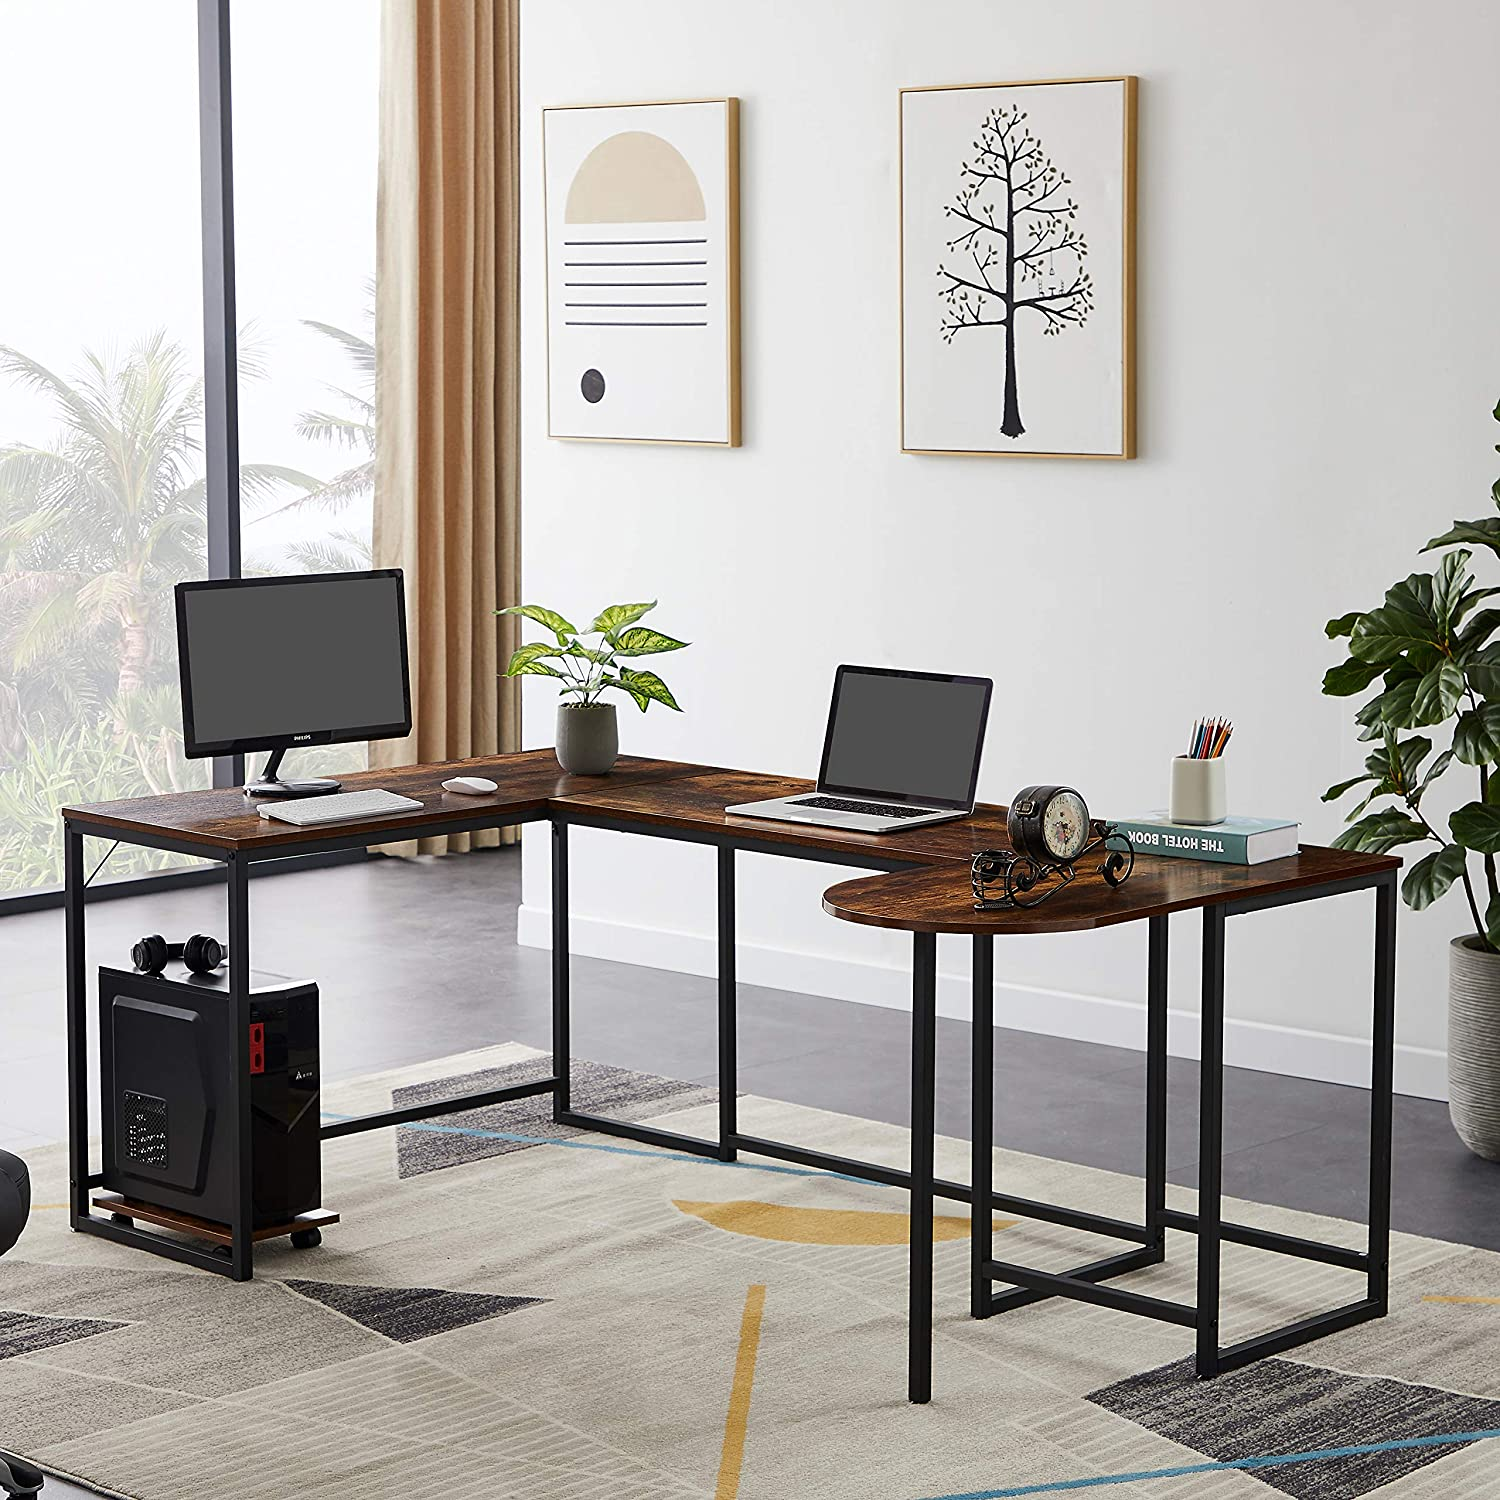 Merax U-Shaped Computer, Industrial Corner Writing CPU Stand, Gaming Table Workstation Home Office Desk, 78.7